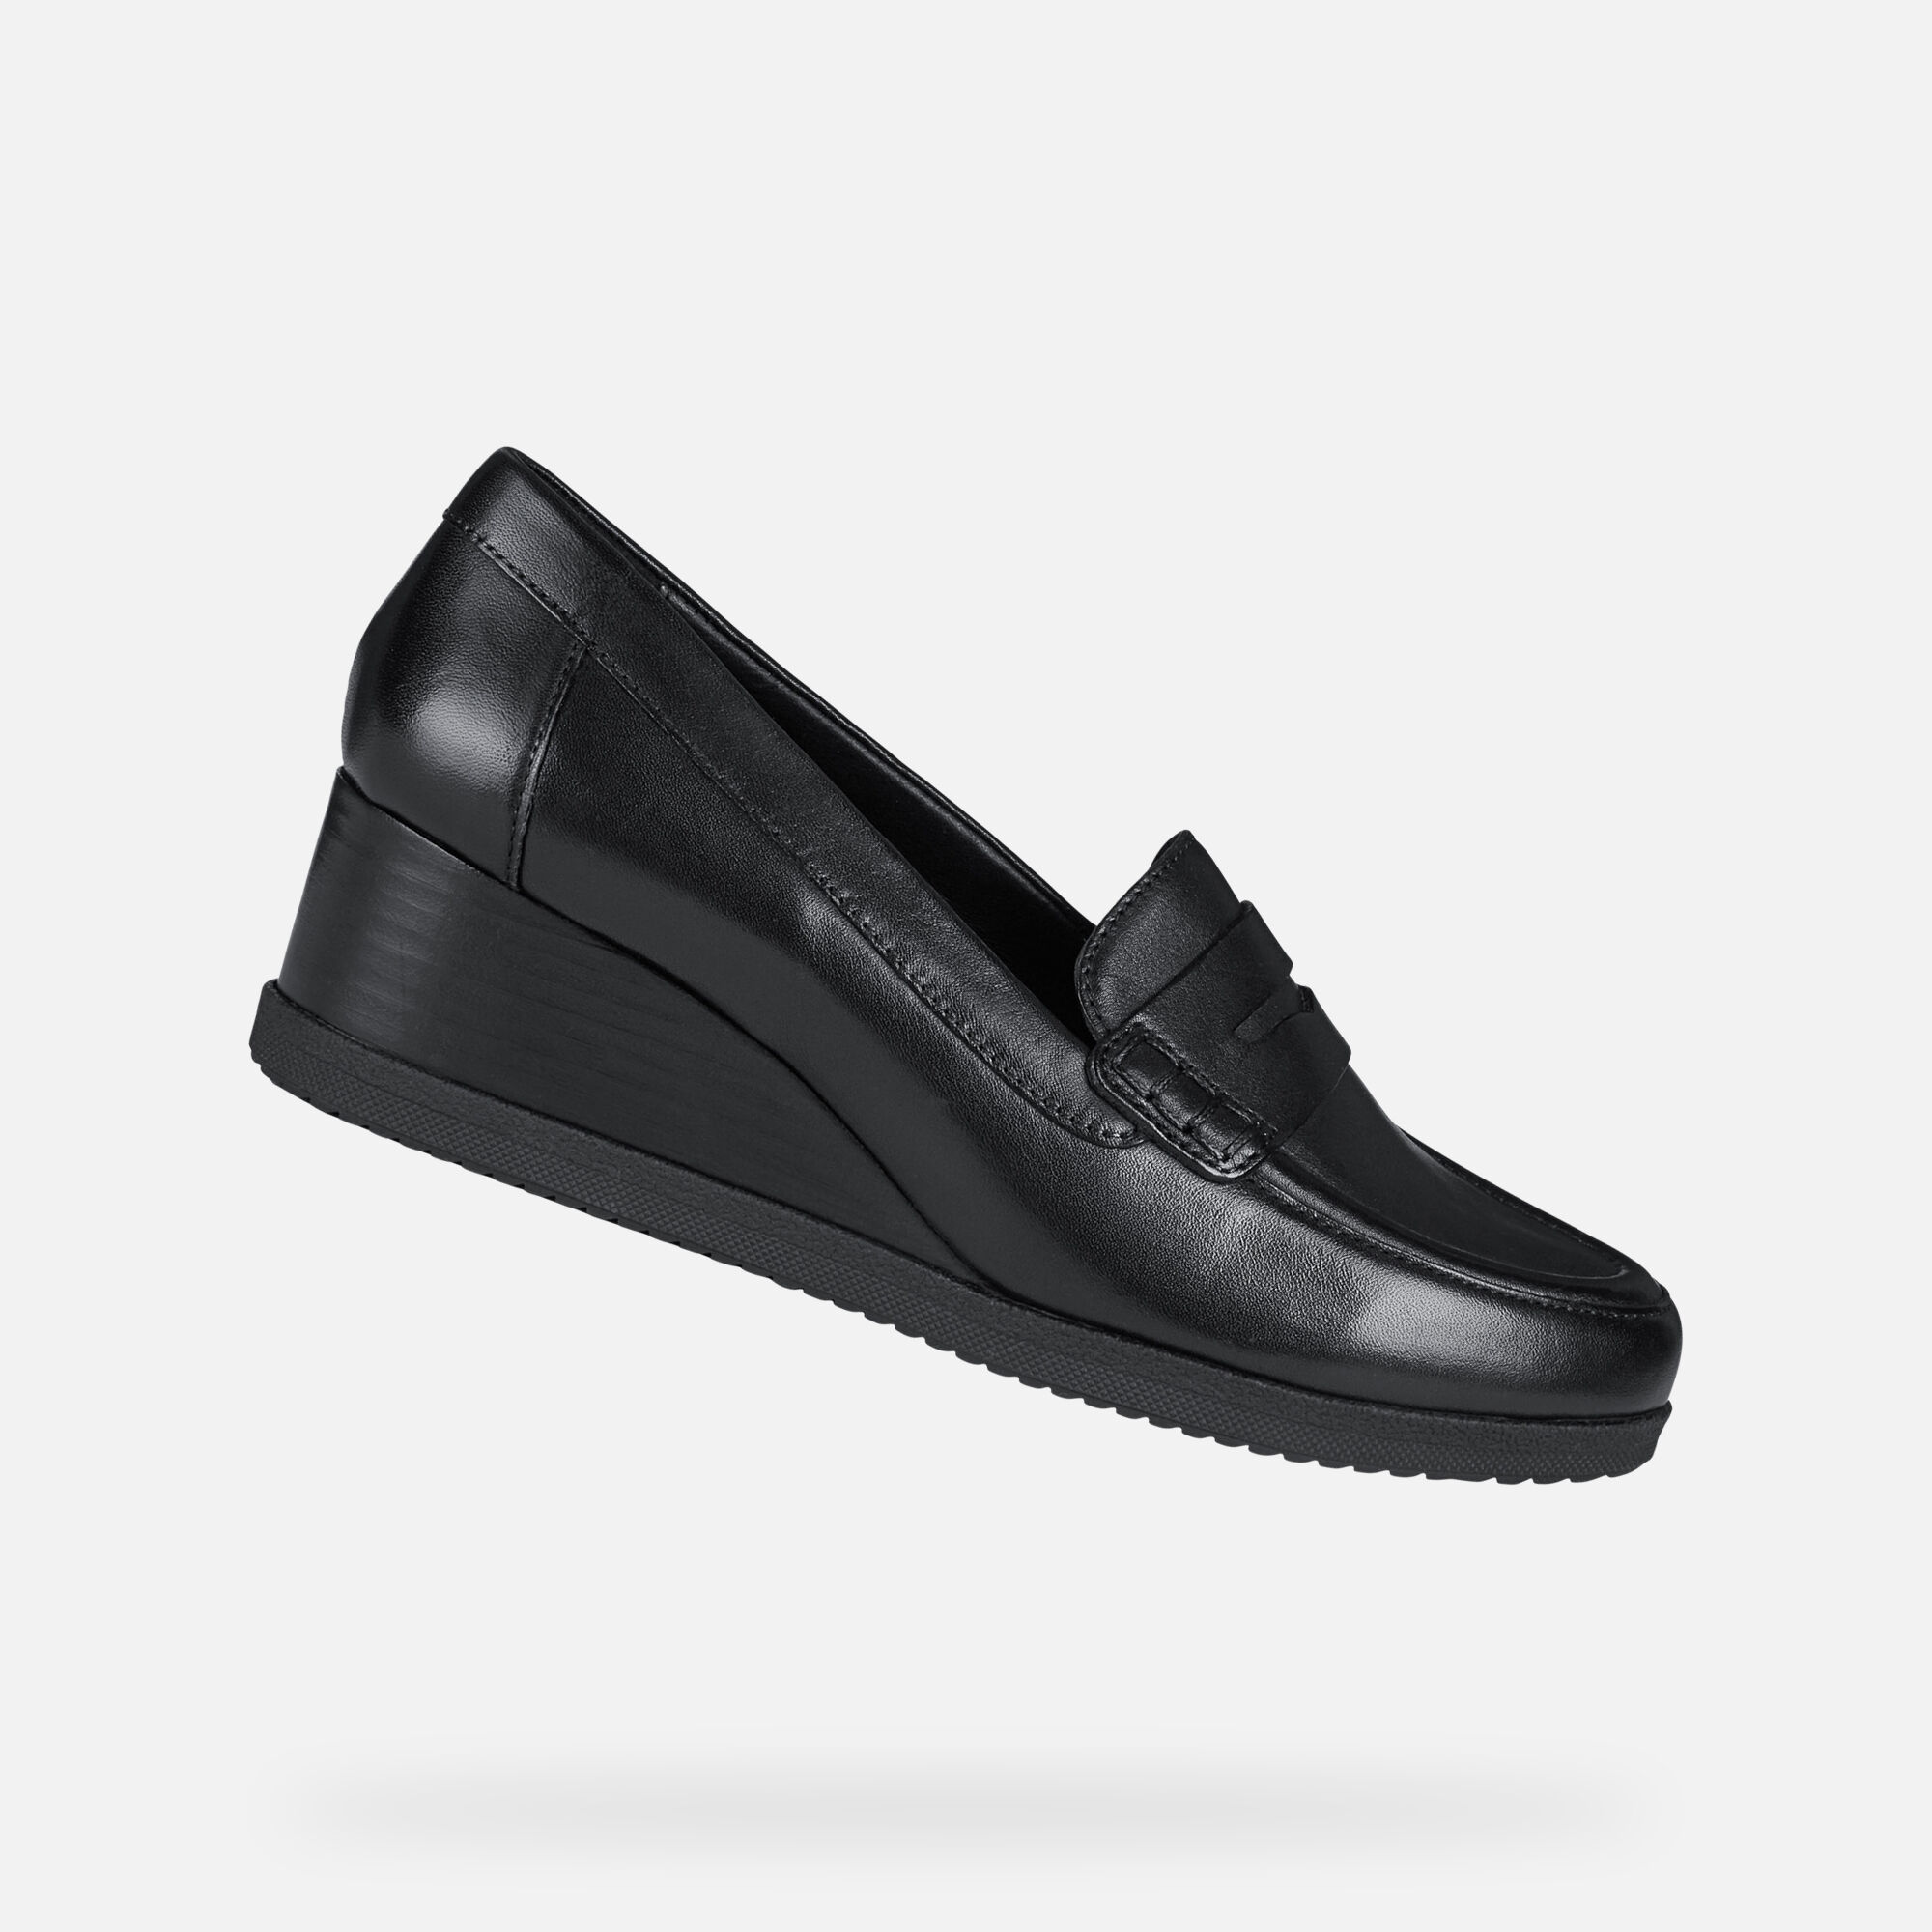 ANYLLA WOMAN - LOAFERS from women | Geox